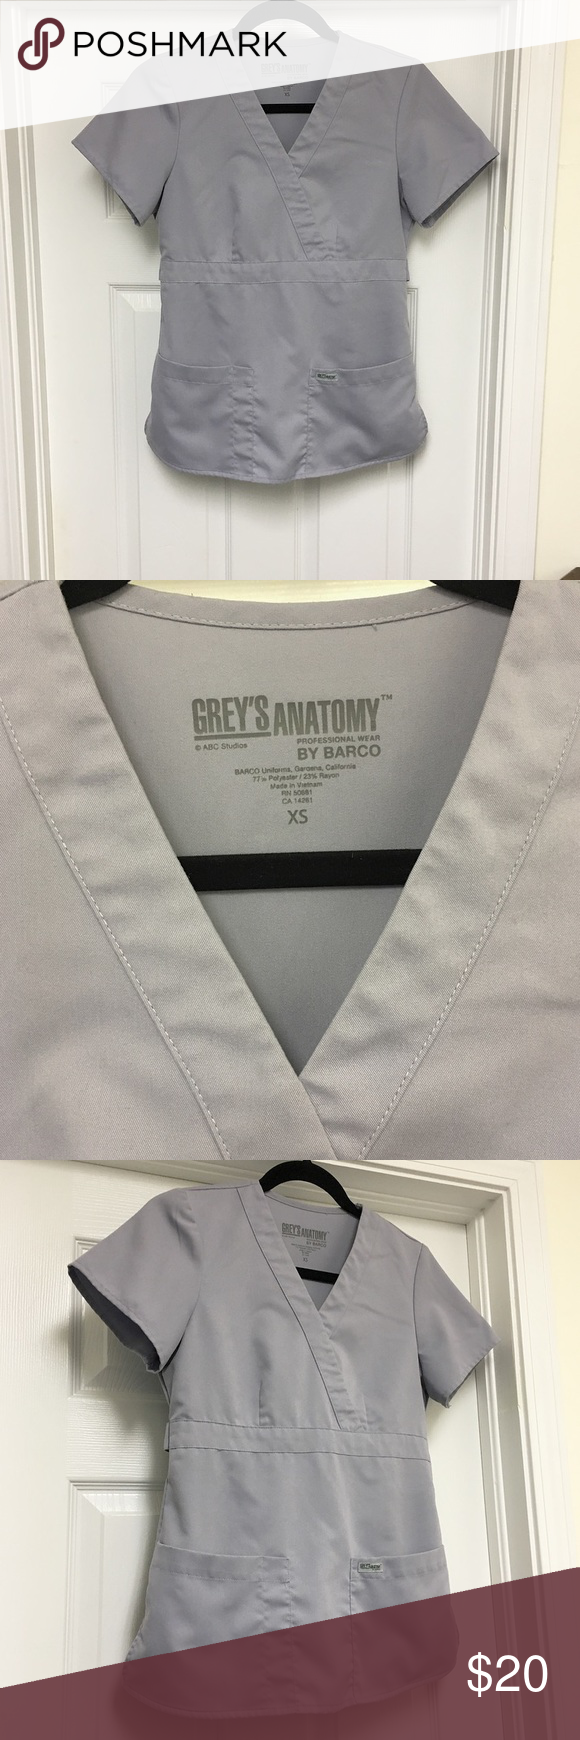 """Moonstruck Grey's Anatomy Scrub Top Light grey/silver scrub top by Barco's Grey's Anatomy scrub line. Size XS. Mock wrap style top. Two adjustable buttons for tightening or loosening around waist. Has two front pockets. Soft and comfortable polyester/rayon blend. Not stretchy material. Runs SMALL. Color is called """"Moonstruck"""" worn once and in pristine condition Grey's Anatomy Tops Tees - Short Sleeve"""